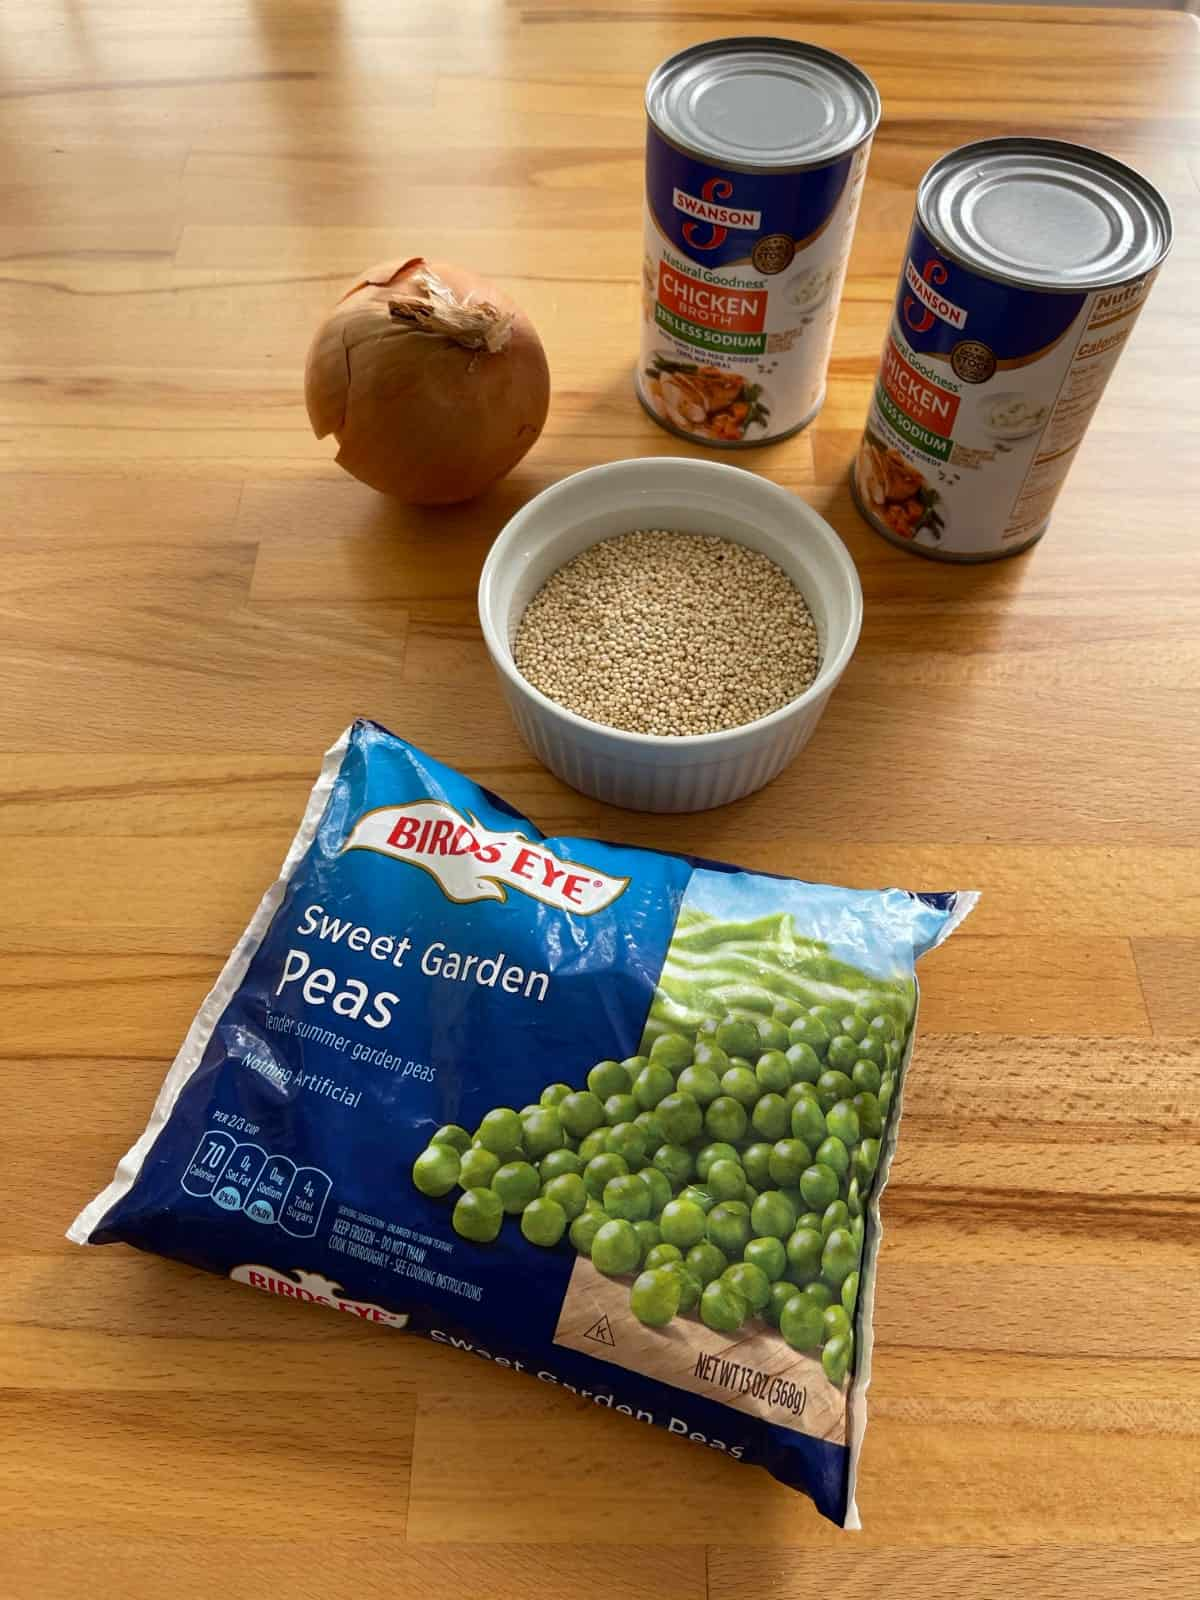 Bag of frozen peas, quinoa, whole onion and two cans of chicken broth for making soup on wood table.